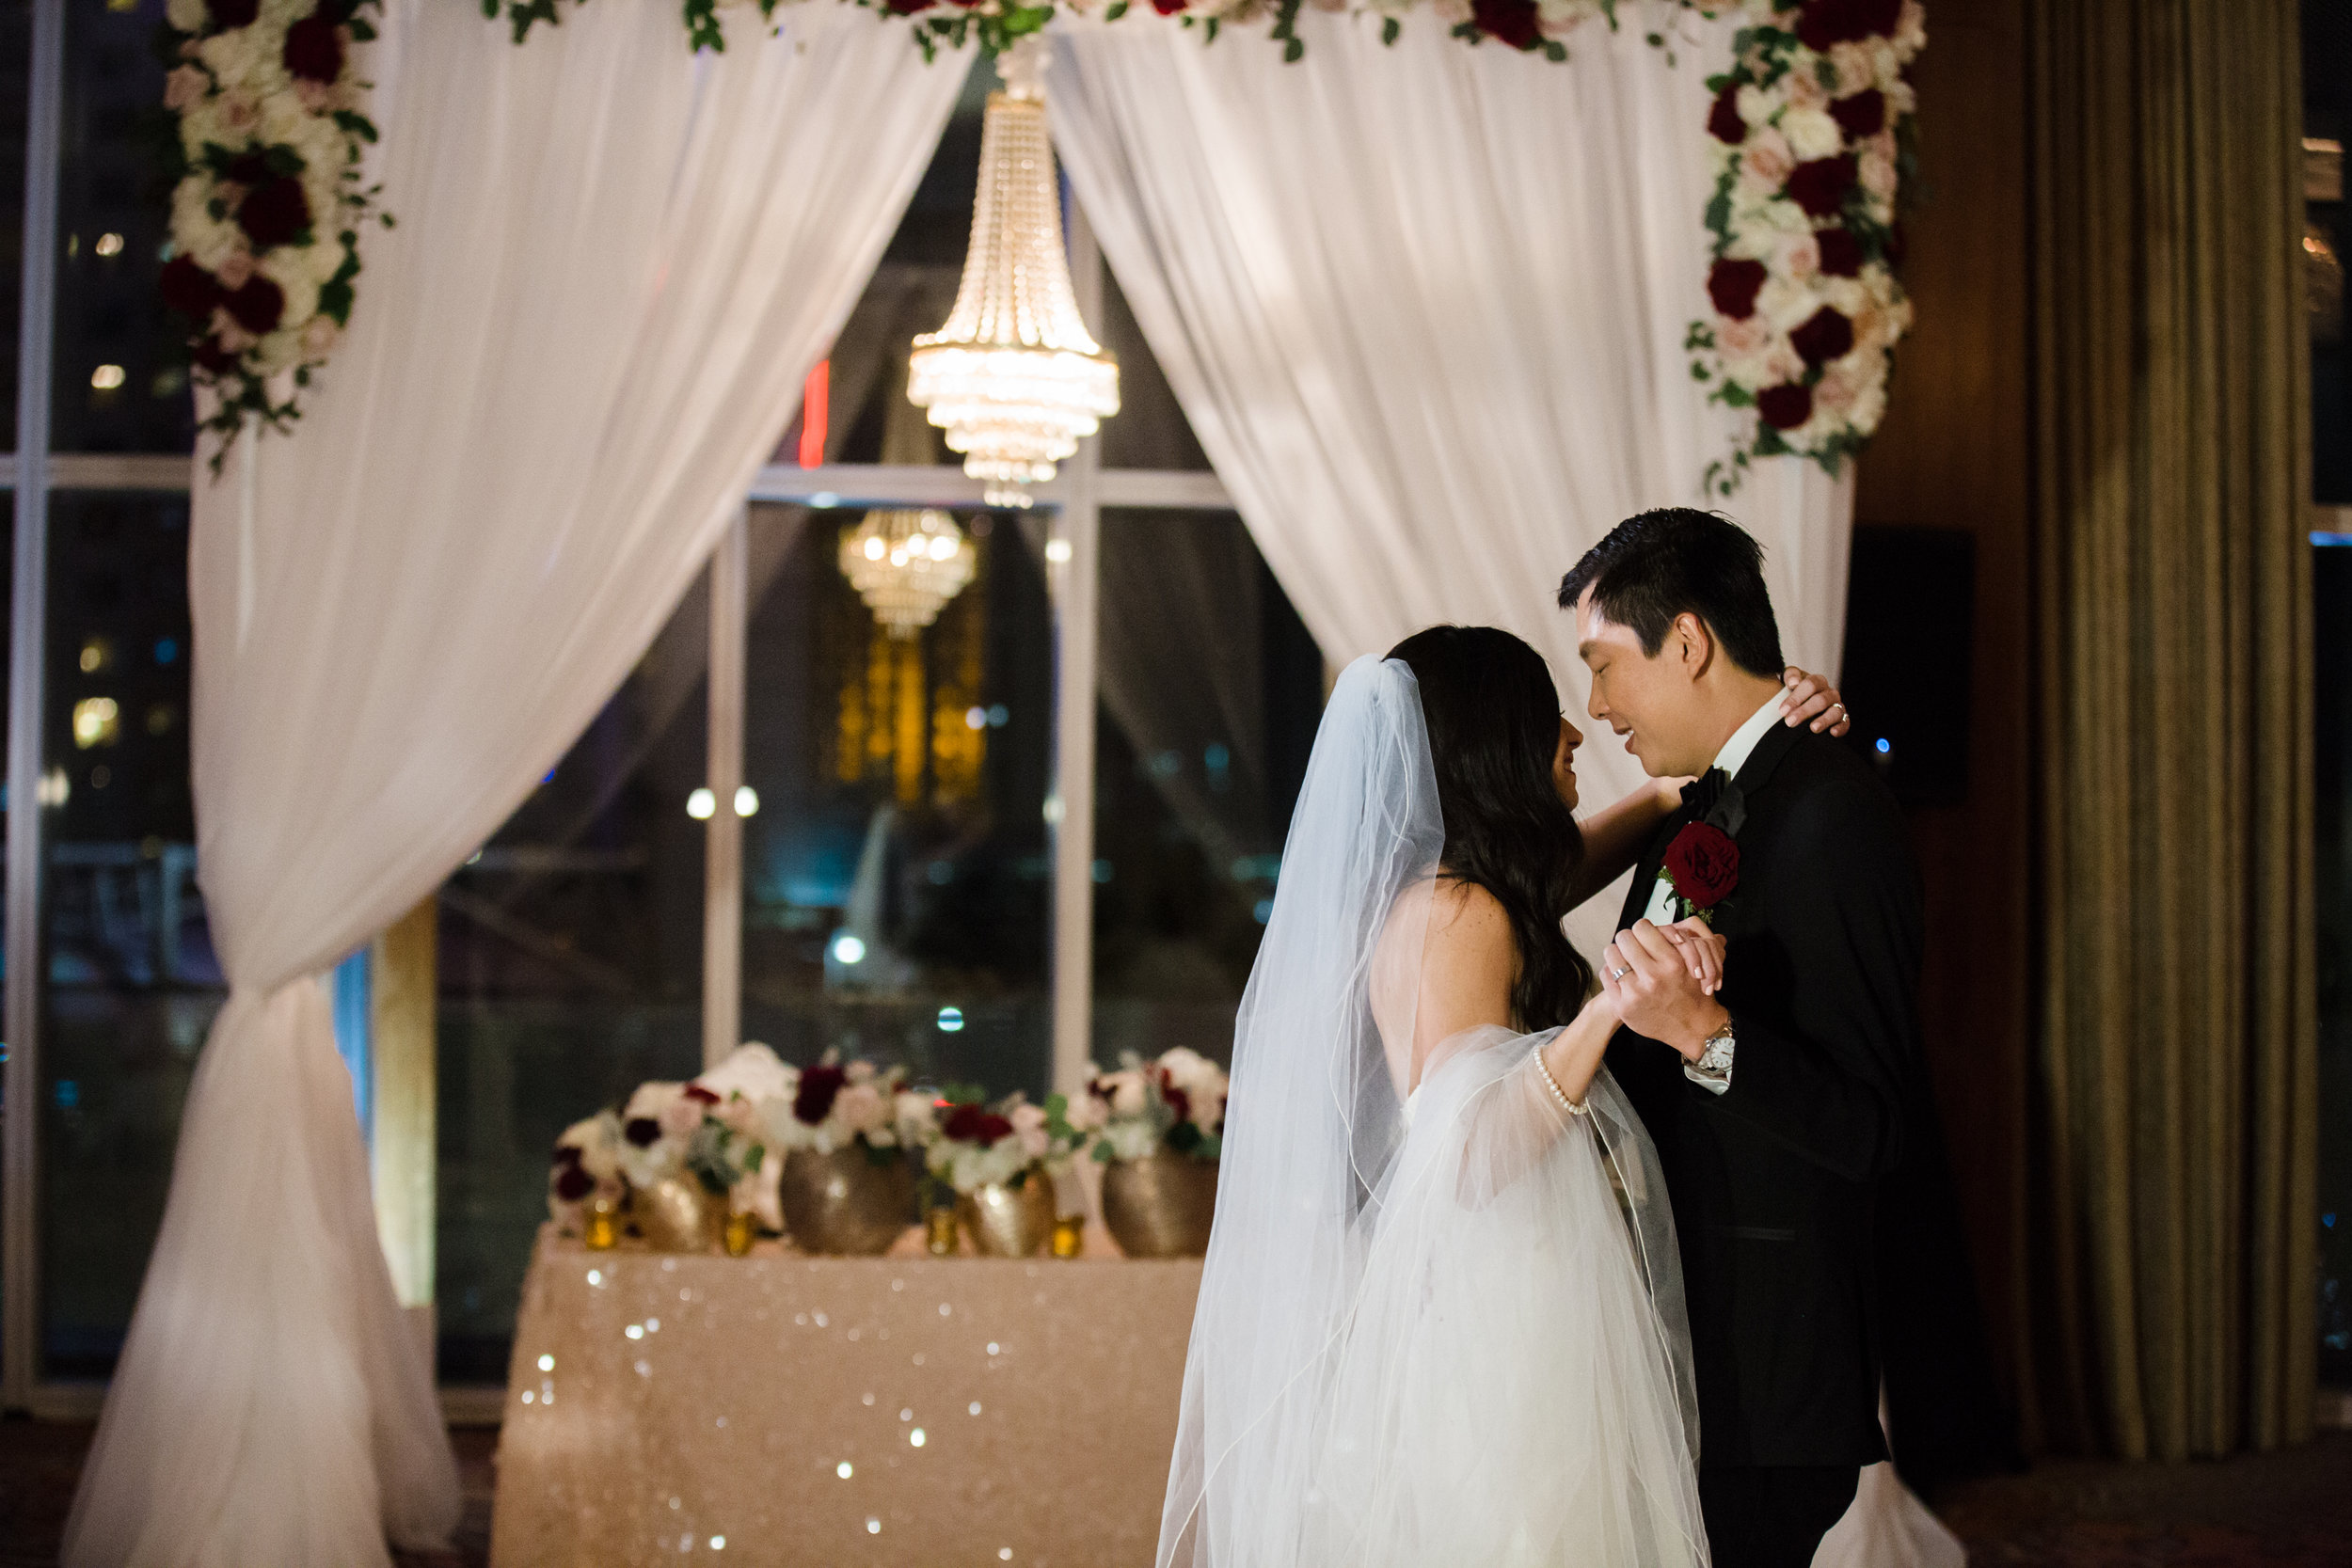 Las Vegas Wedding Planner Andrea Eppolito presents the upscale wedding of Dr. Crane and Dr. Mo inspired by WedLuxe Magazine.